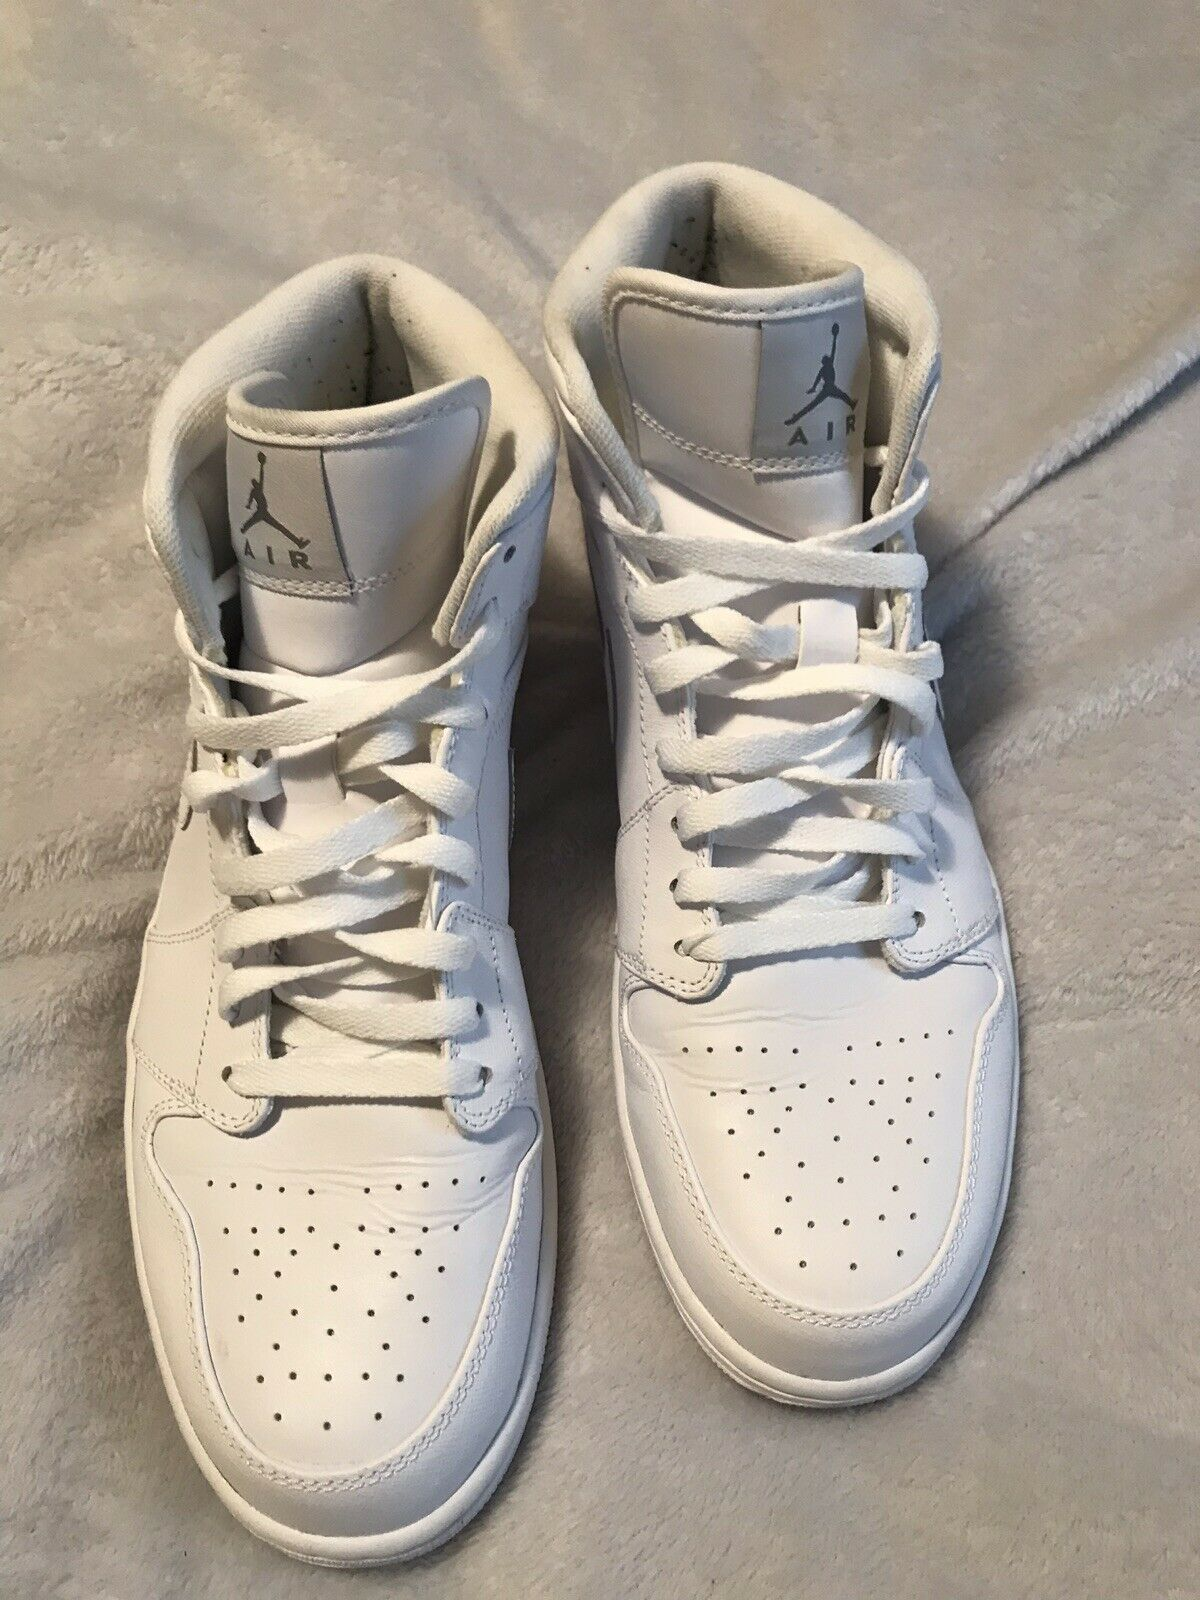 Nike high top Air Force Ones. Men's Size 12